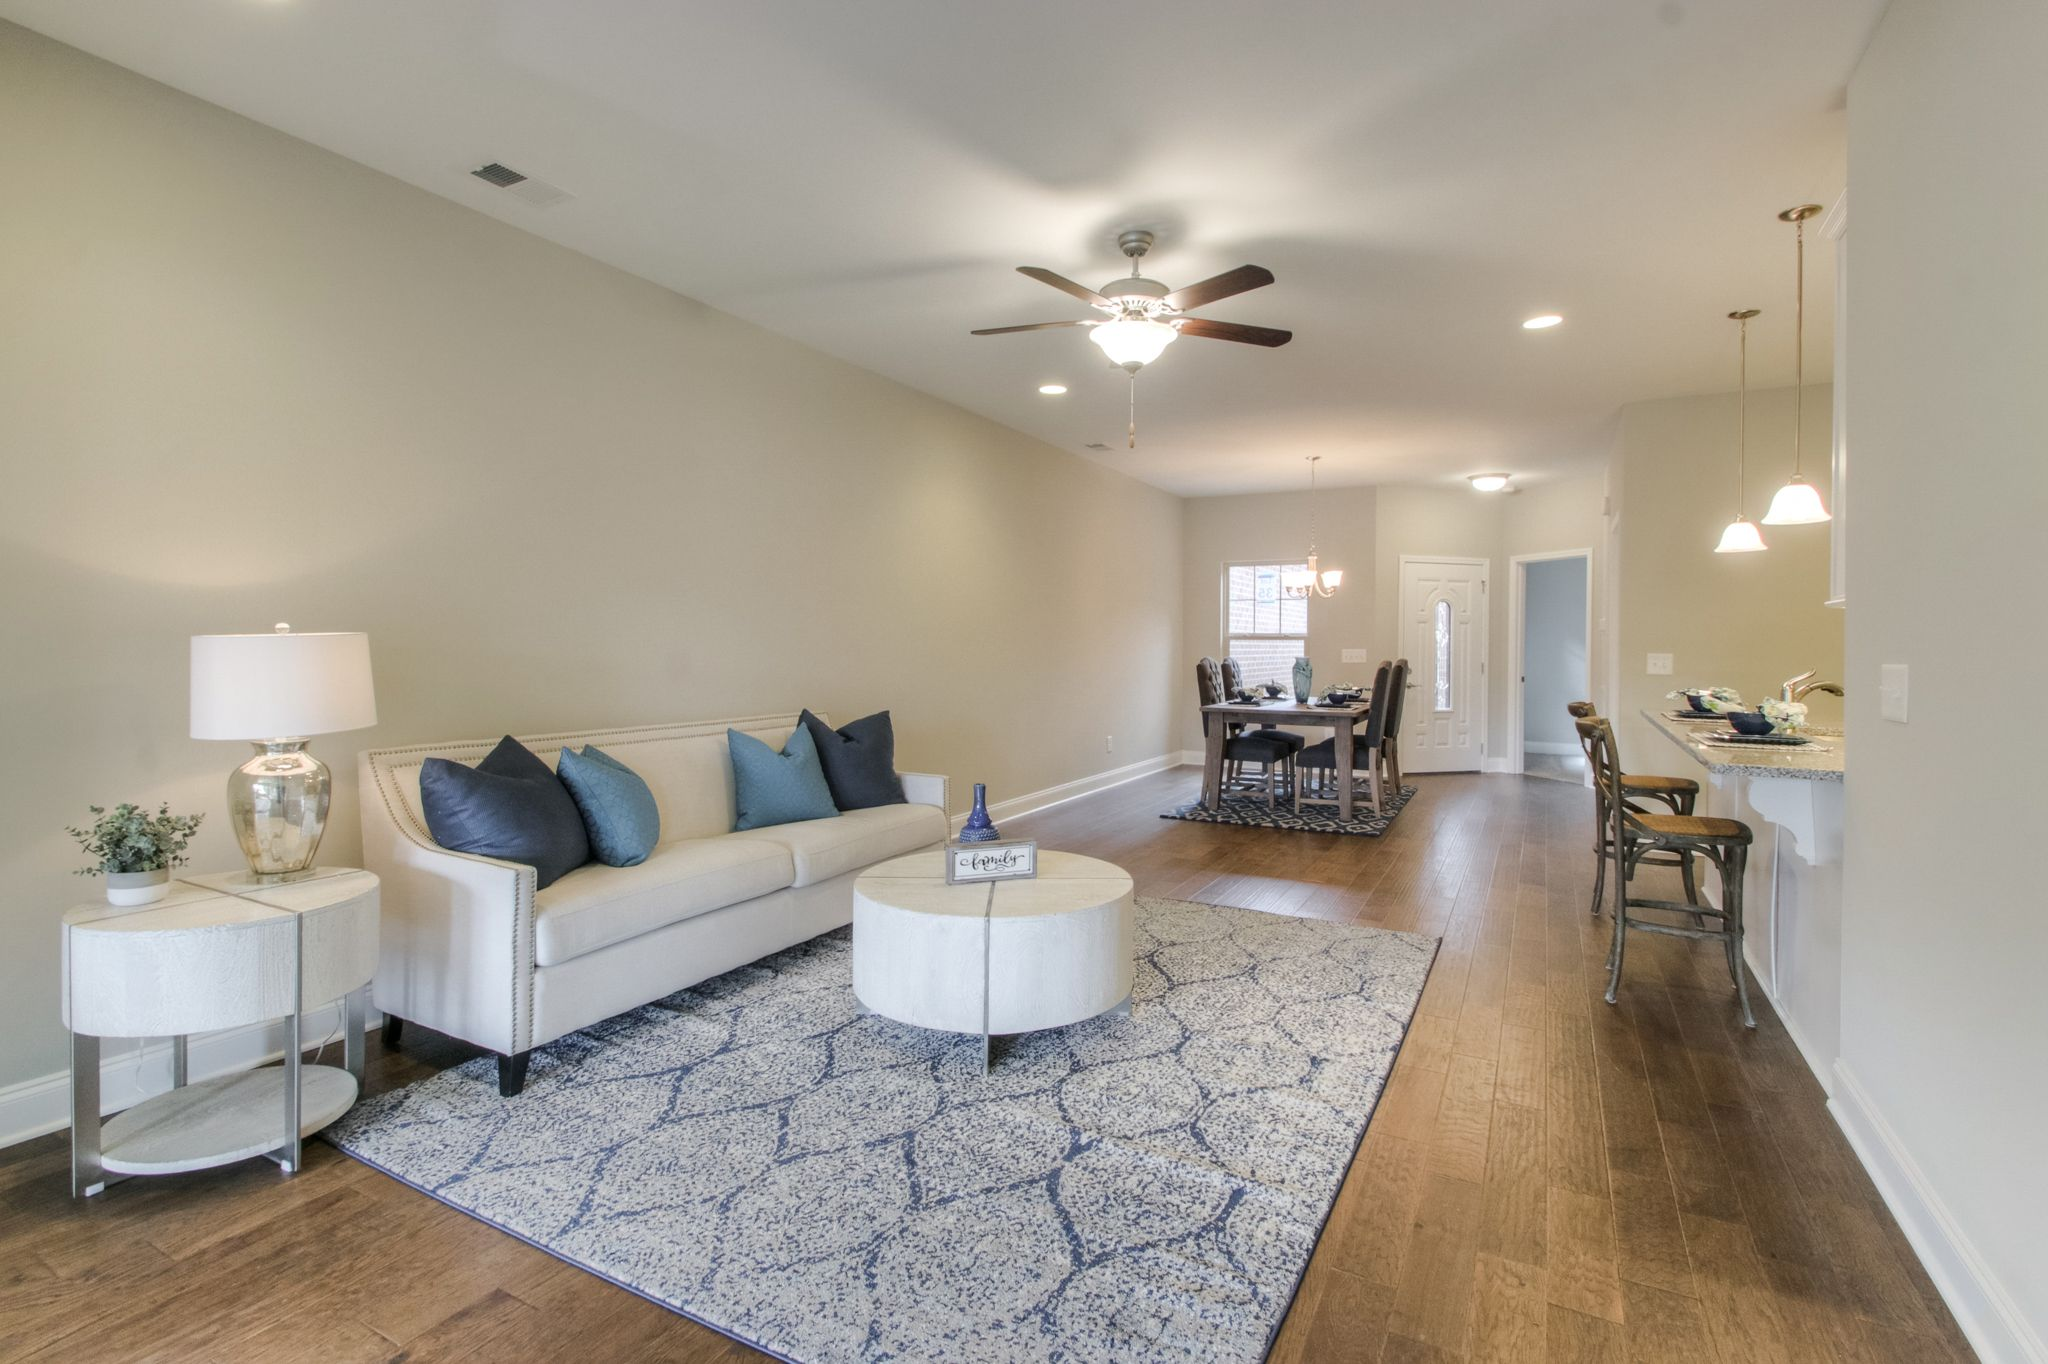 Living Area featured in The Waverleigh Courtyard Cottage By Goodall Homes in Knoxville, TN